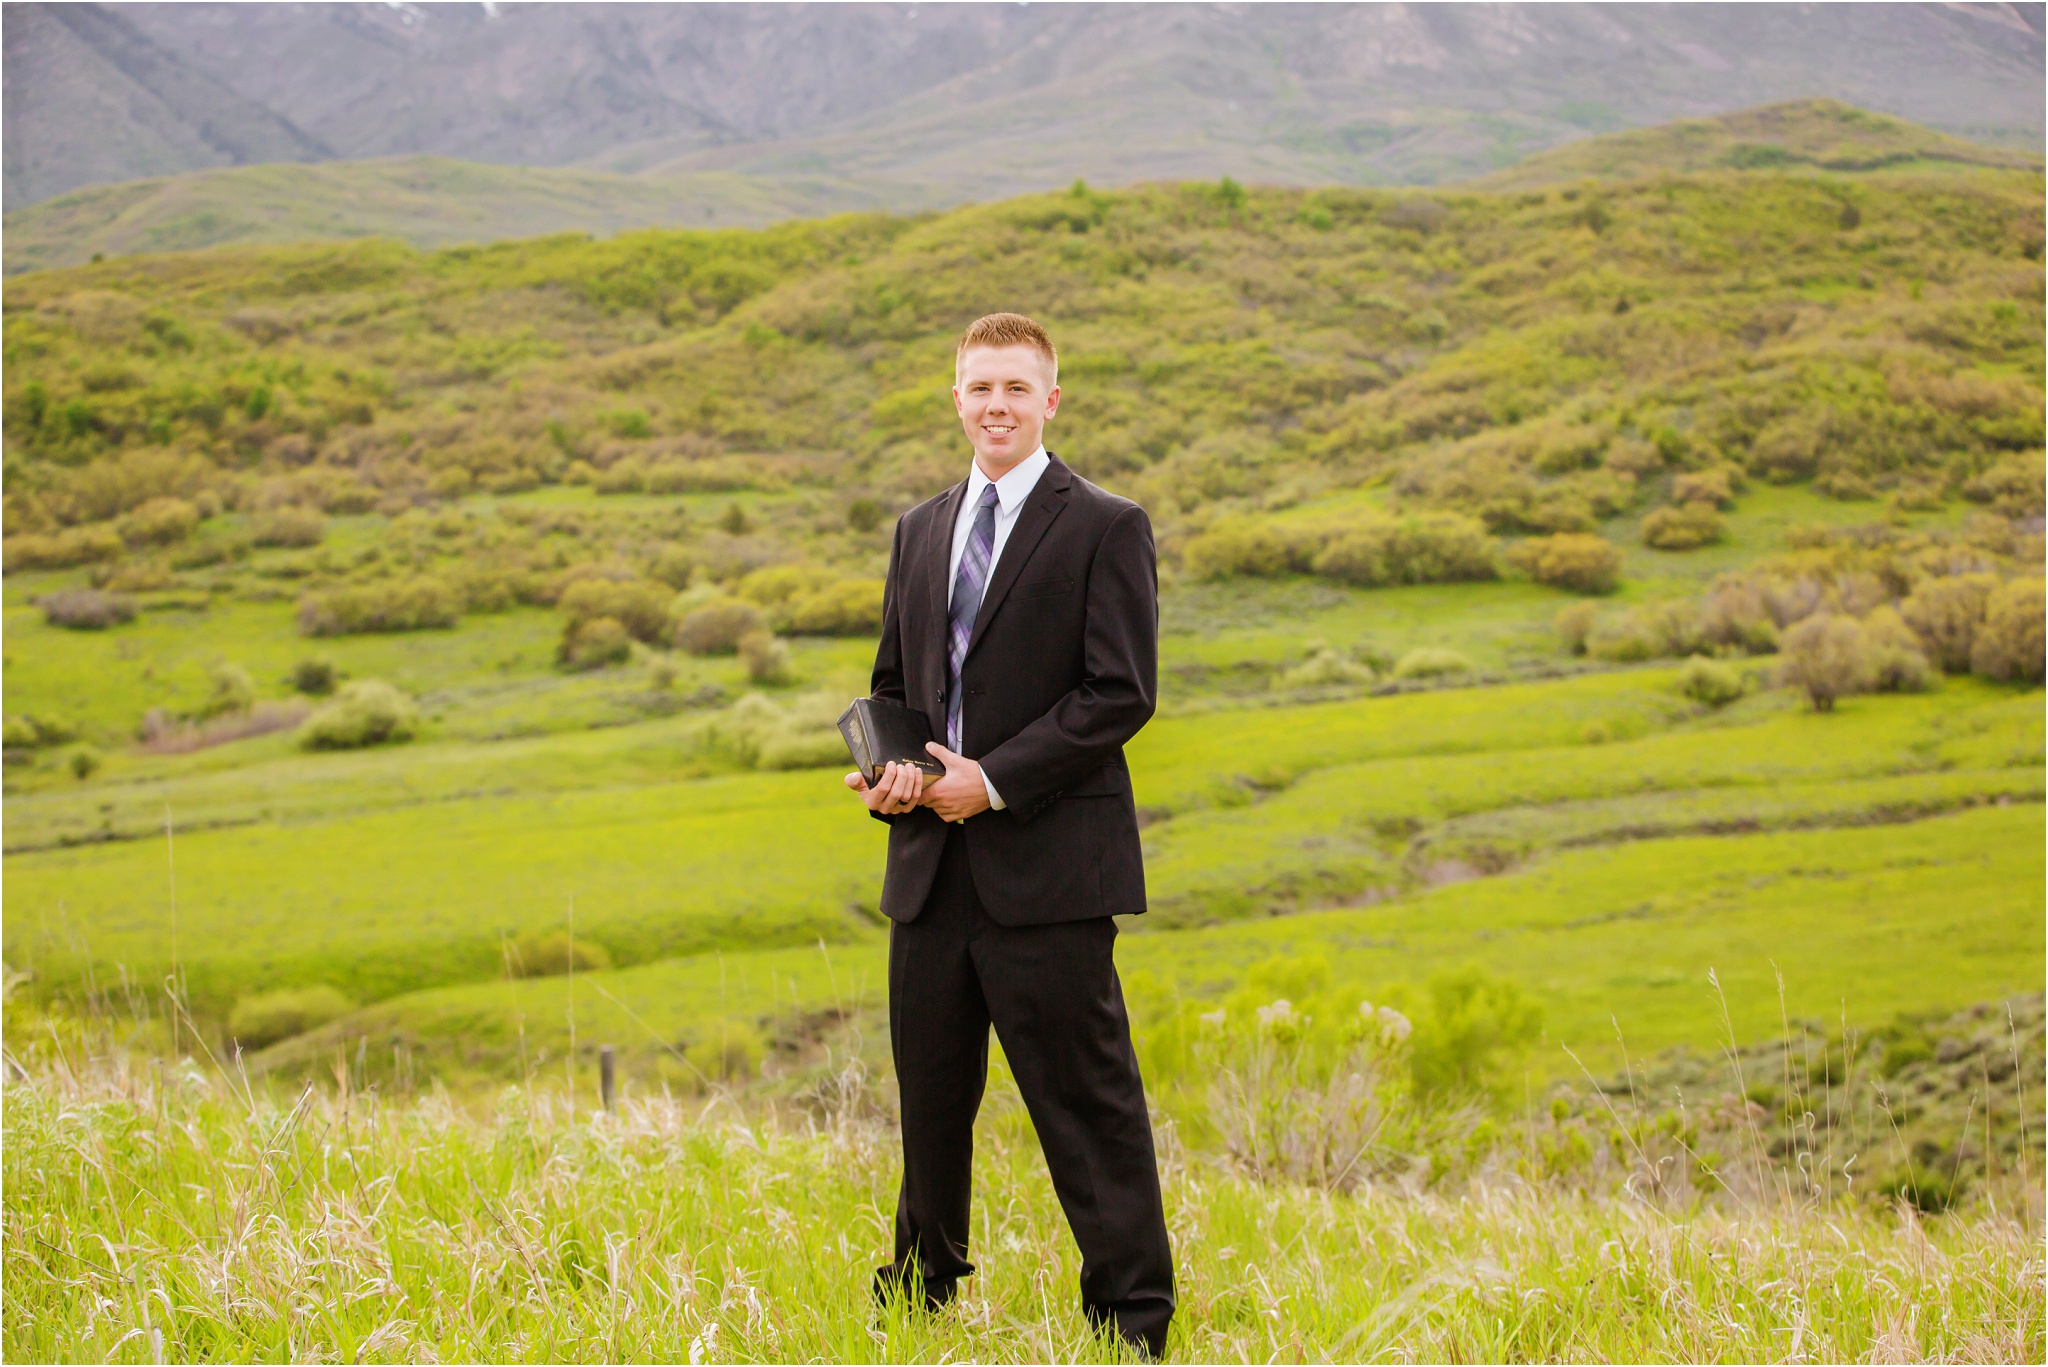 Utah Mountains LDS Missionary Terra Cooper Photography_2225.jpg